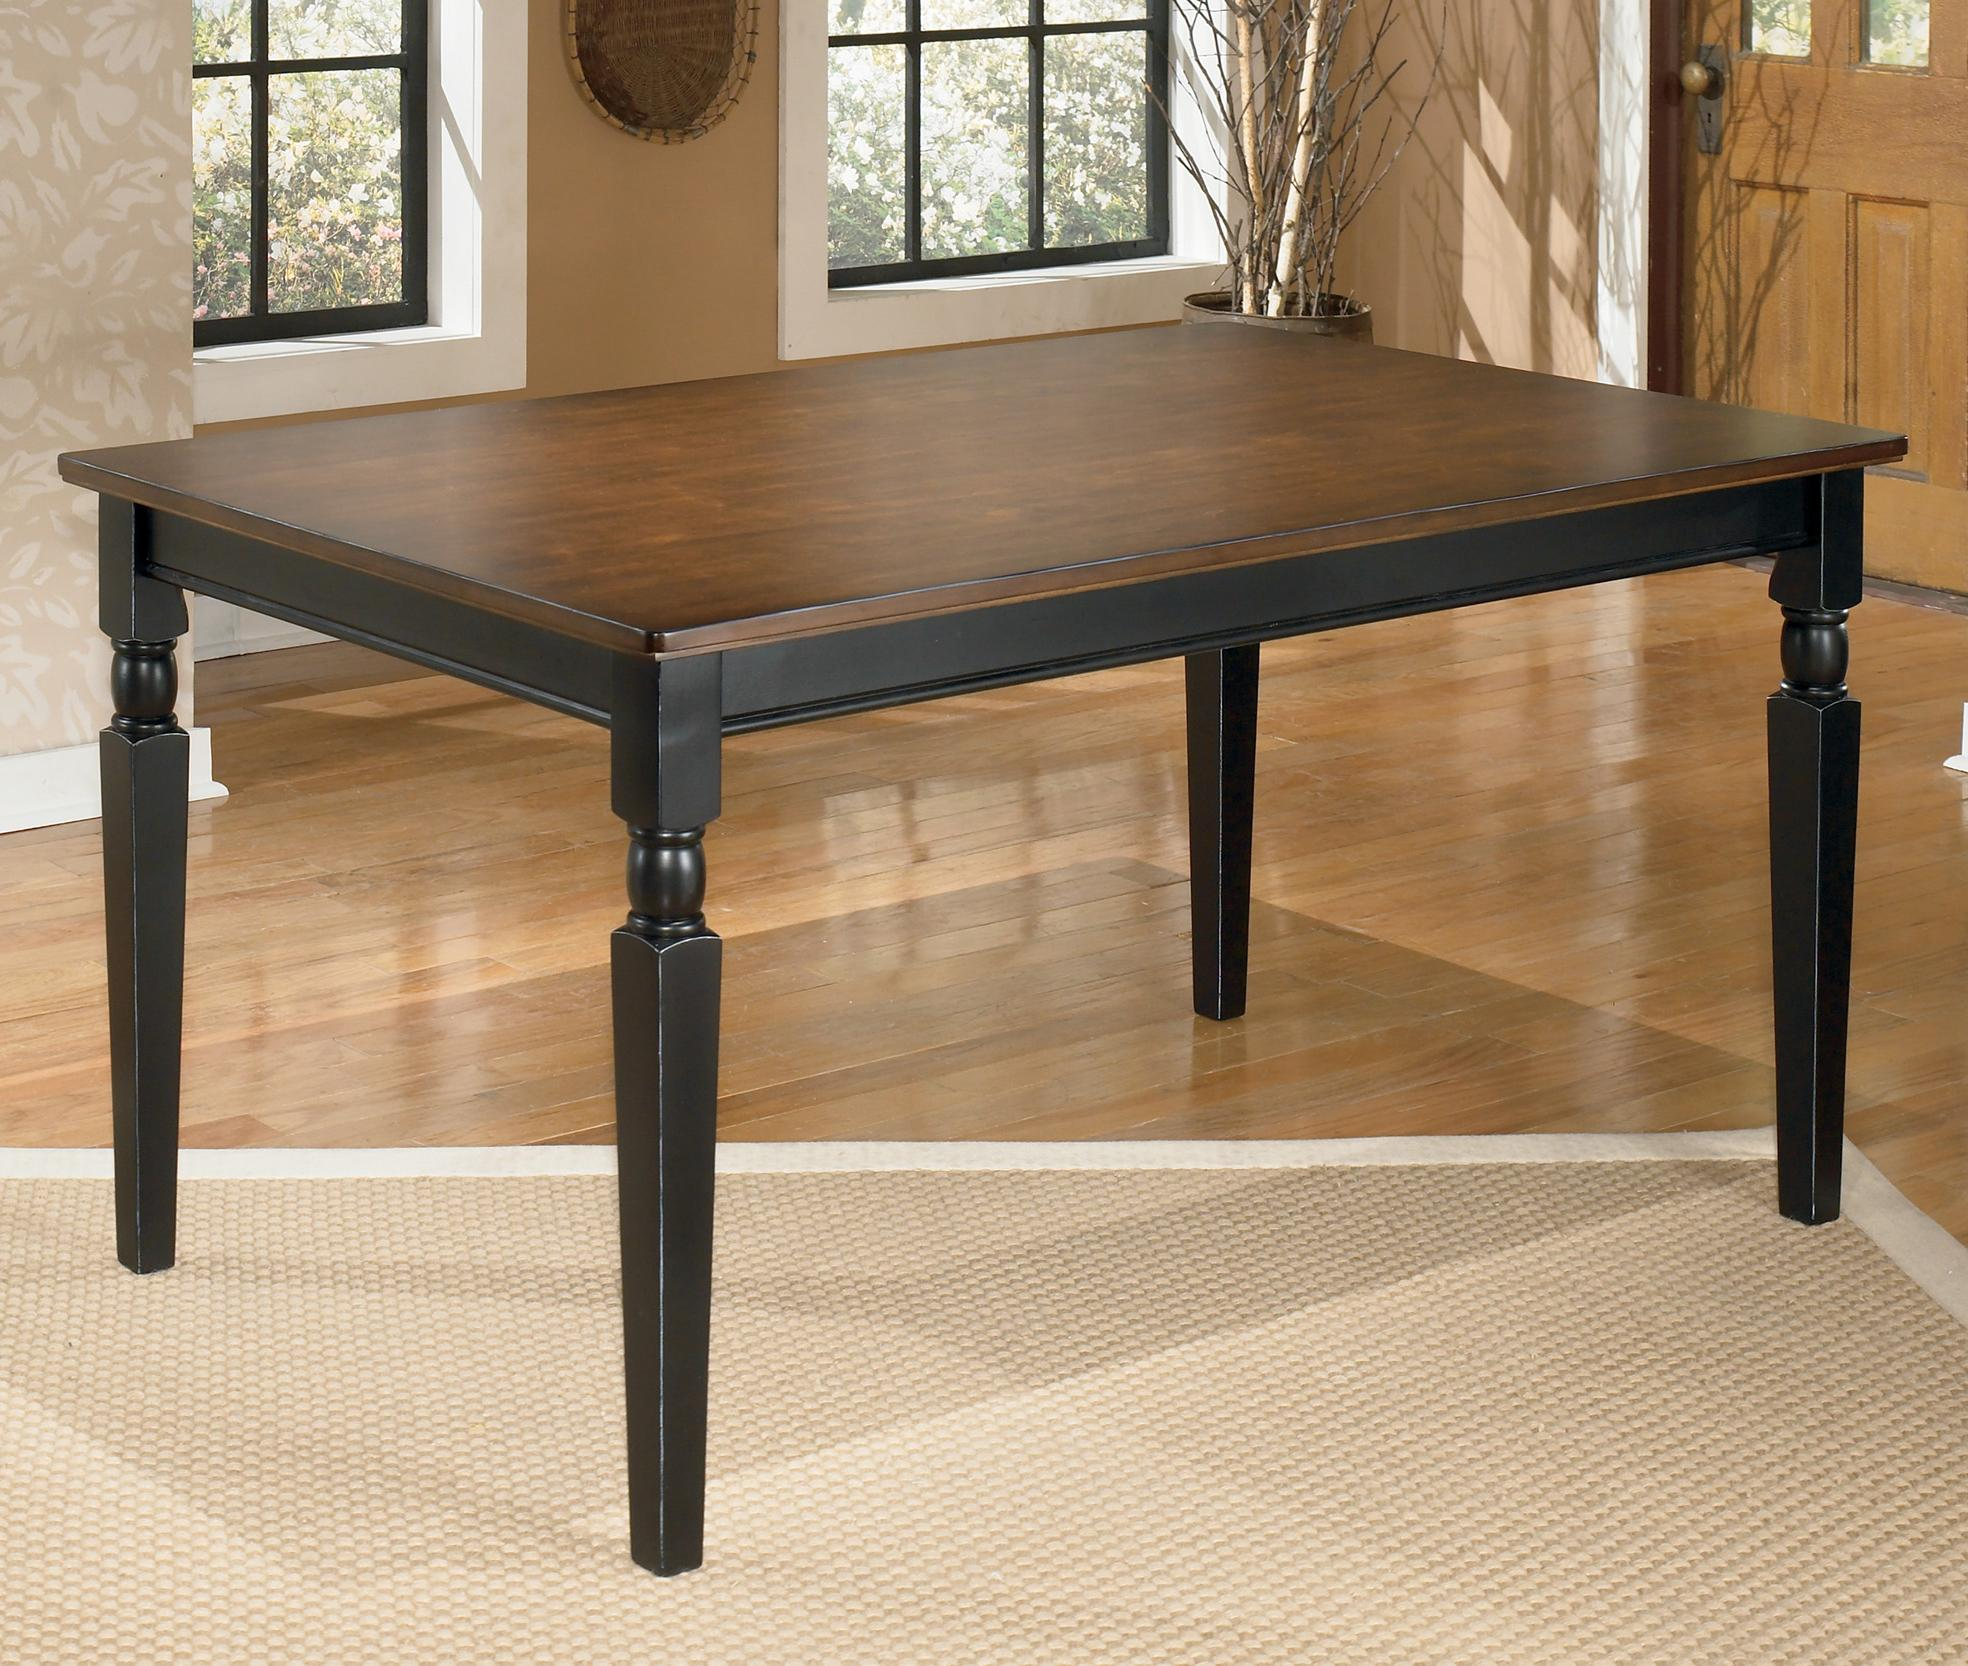 Owingsville Rectangular Dining Room Table by Ashley (Signature Design) at Johnny Janosik